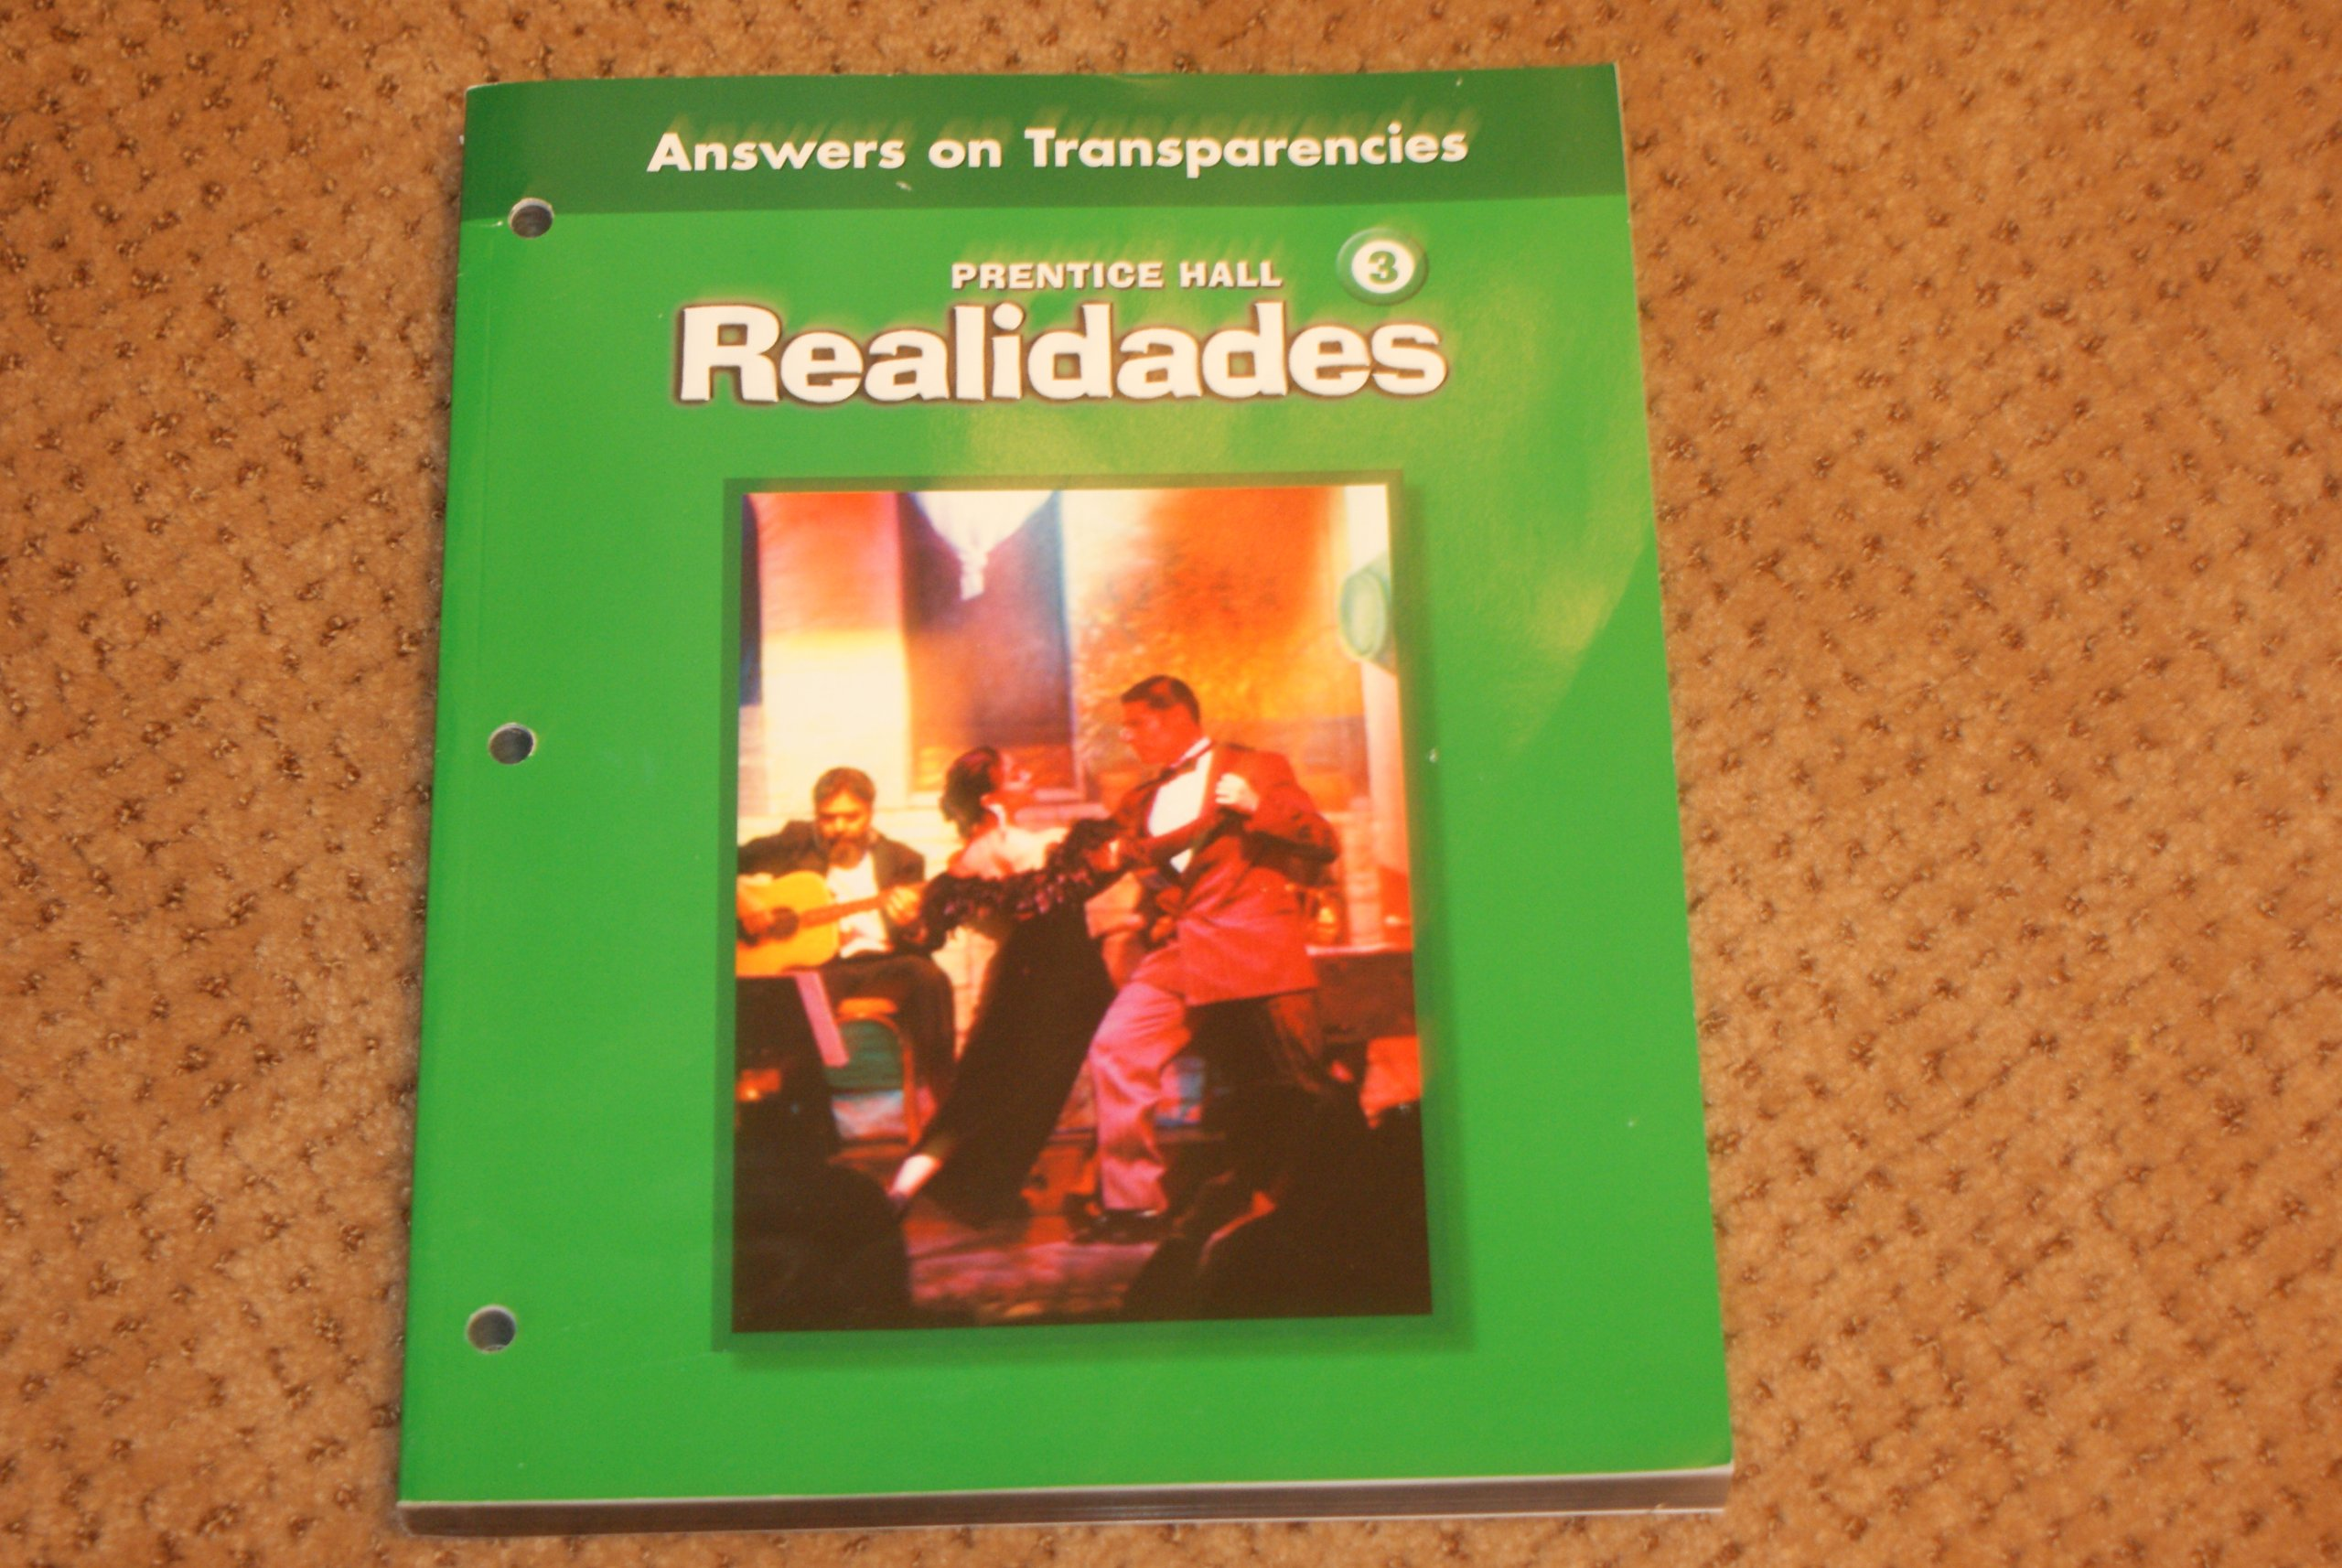 Realidades 3 practice answers on transparencies prentice hall realidades 3 practice answers on transparencies prentice hall 9780130360267 amazon books fandeluxe Choice Image